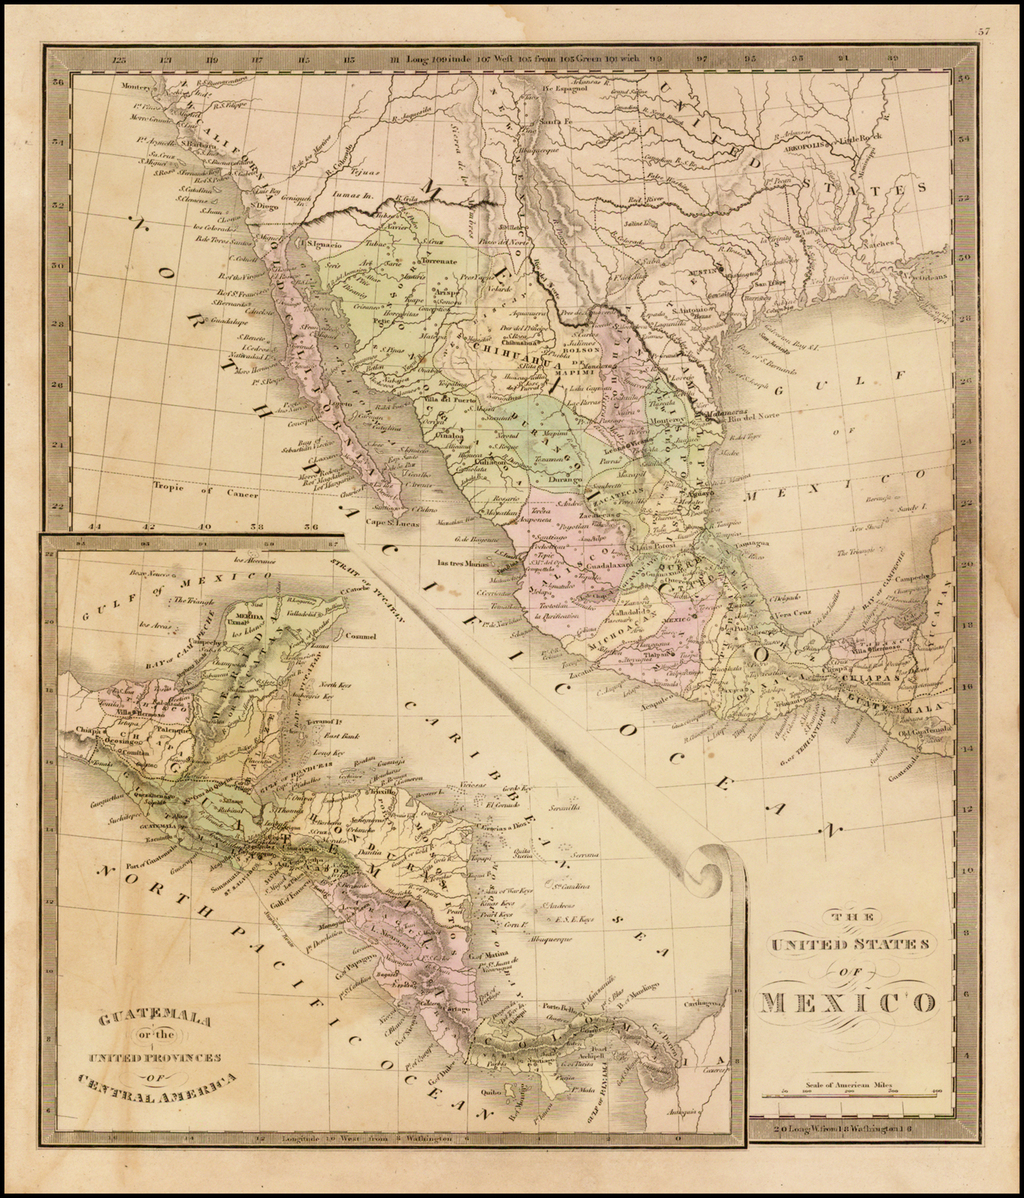 The United States of Mexico . . . [Republic of Texas] By Jeremiah Greenleaf